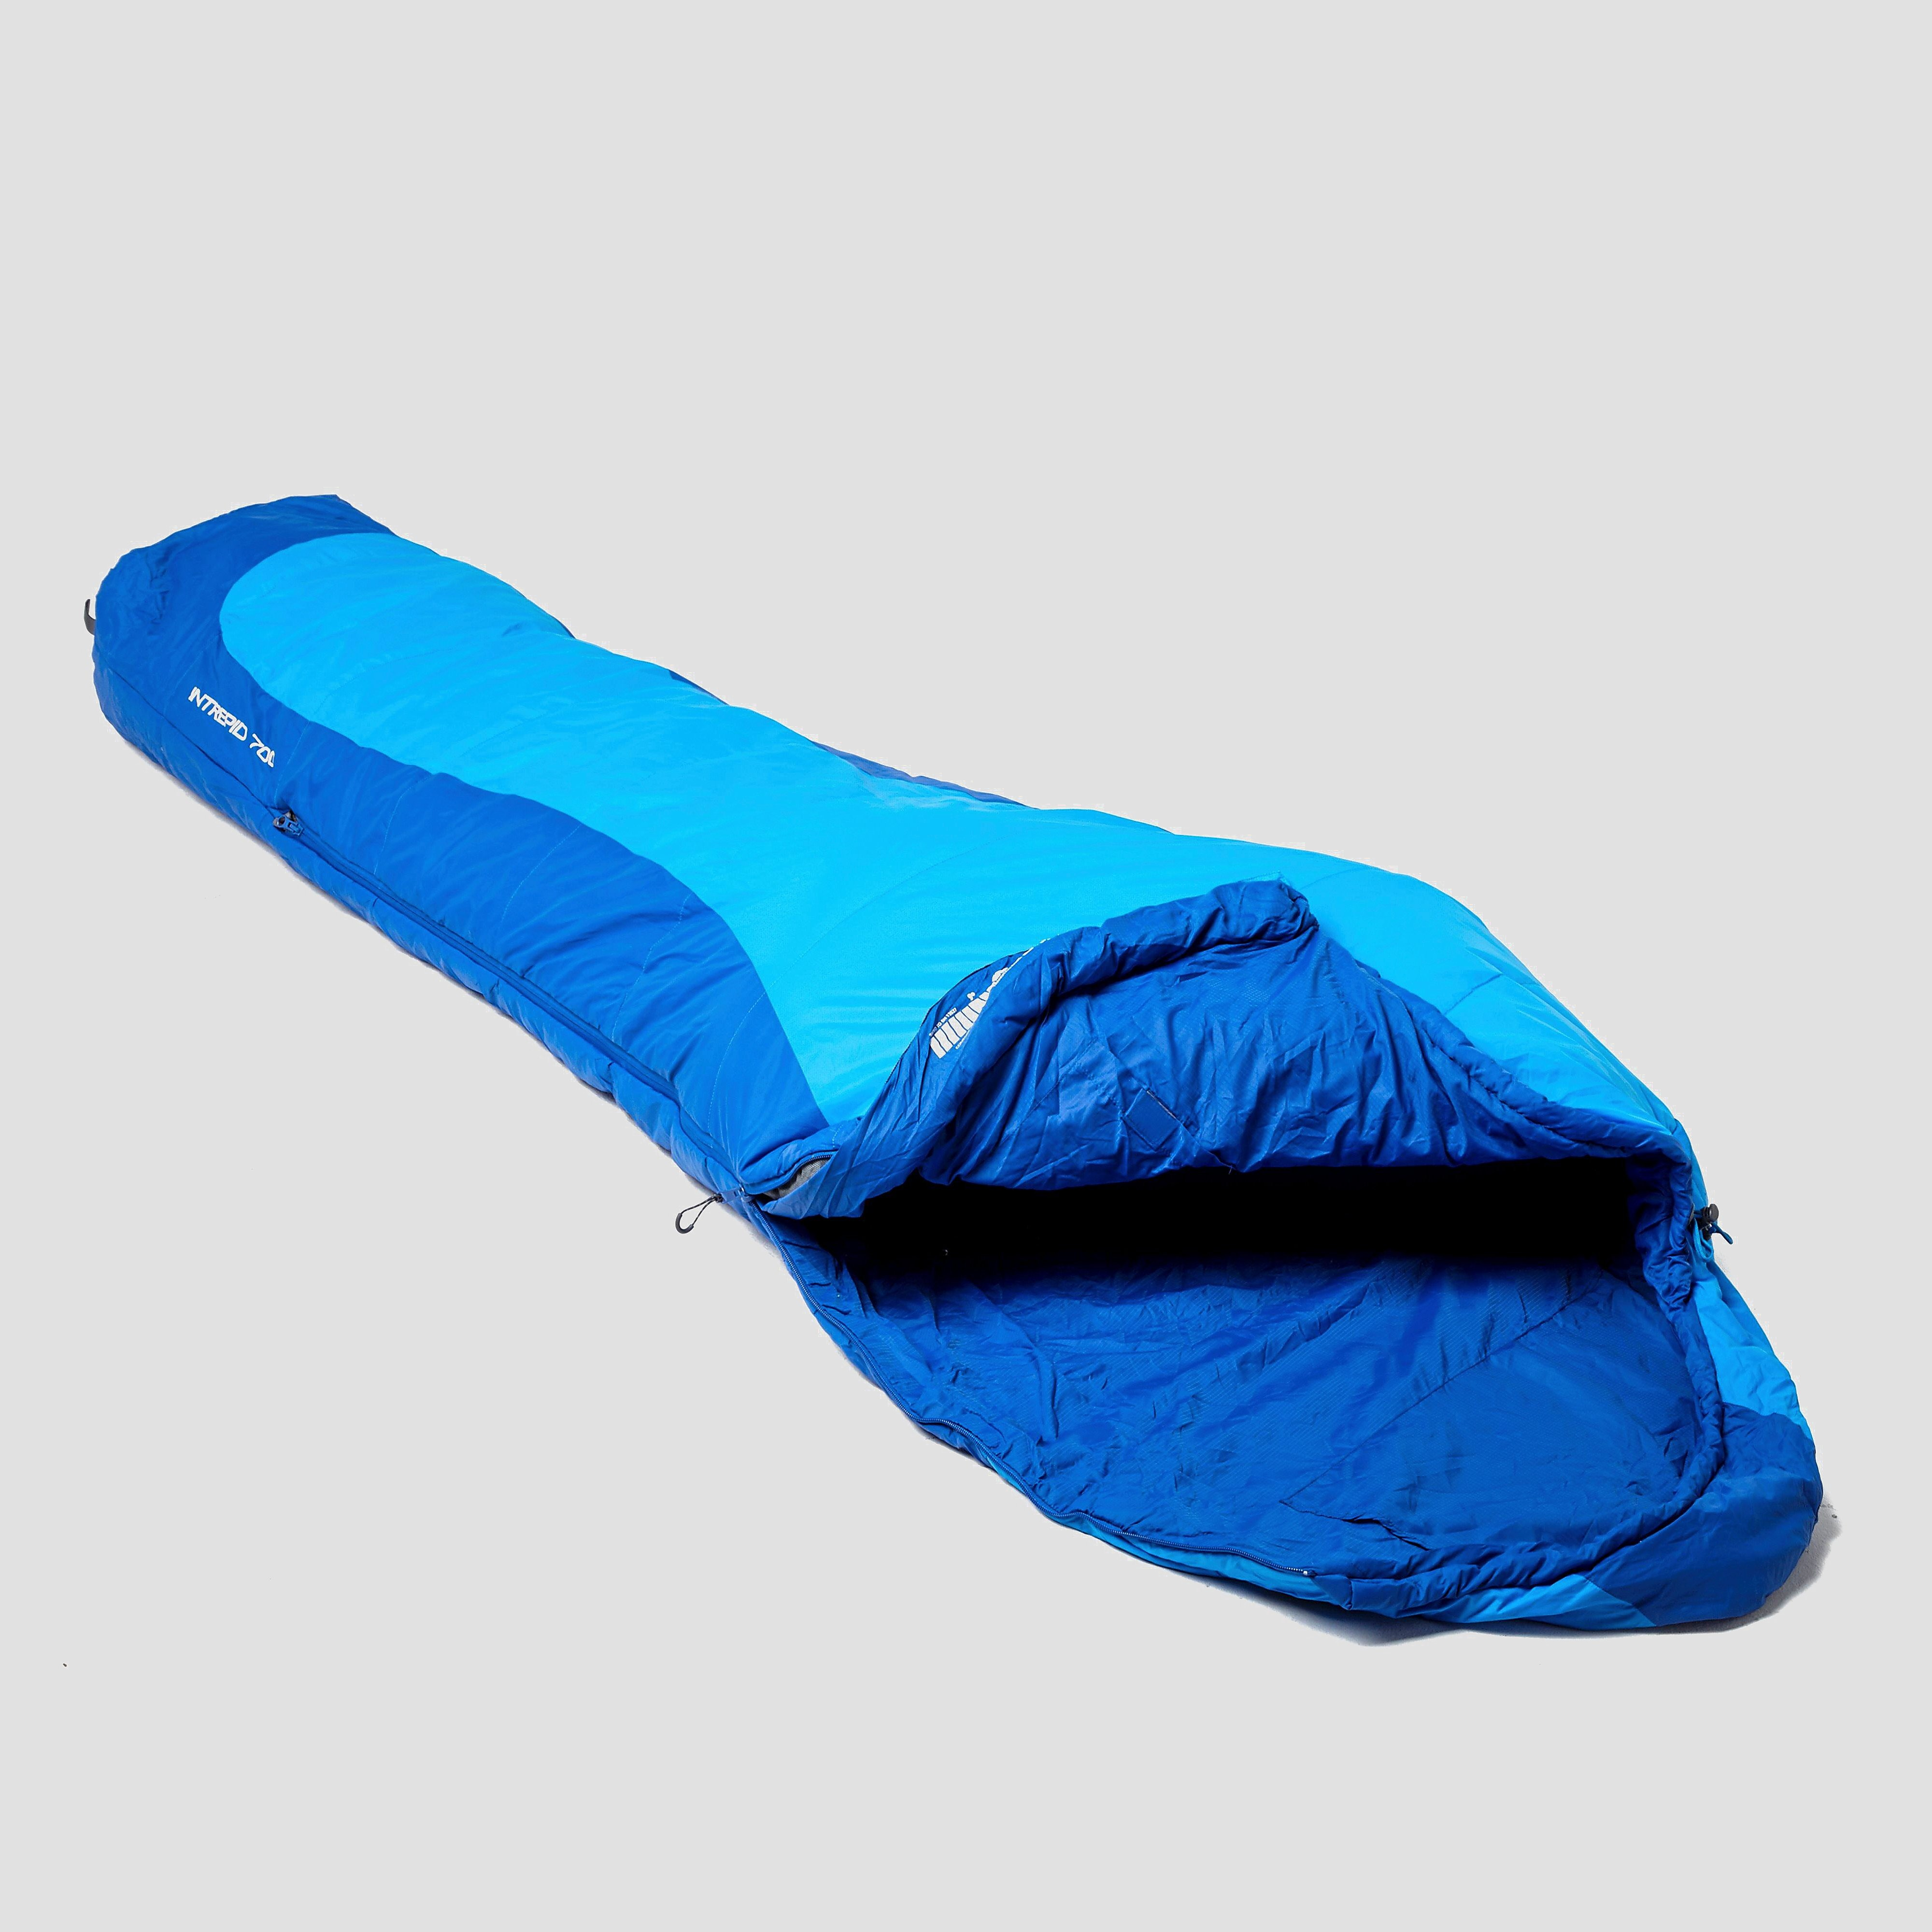 Berghaus Intrepid 700 Sleeping Bag